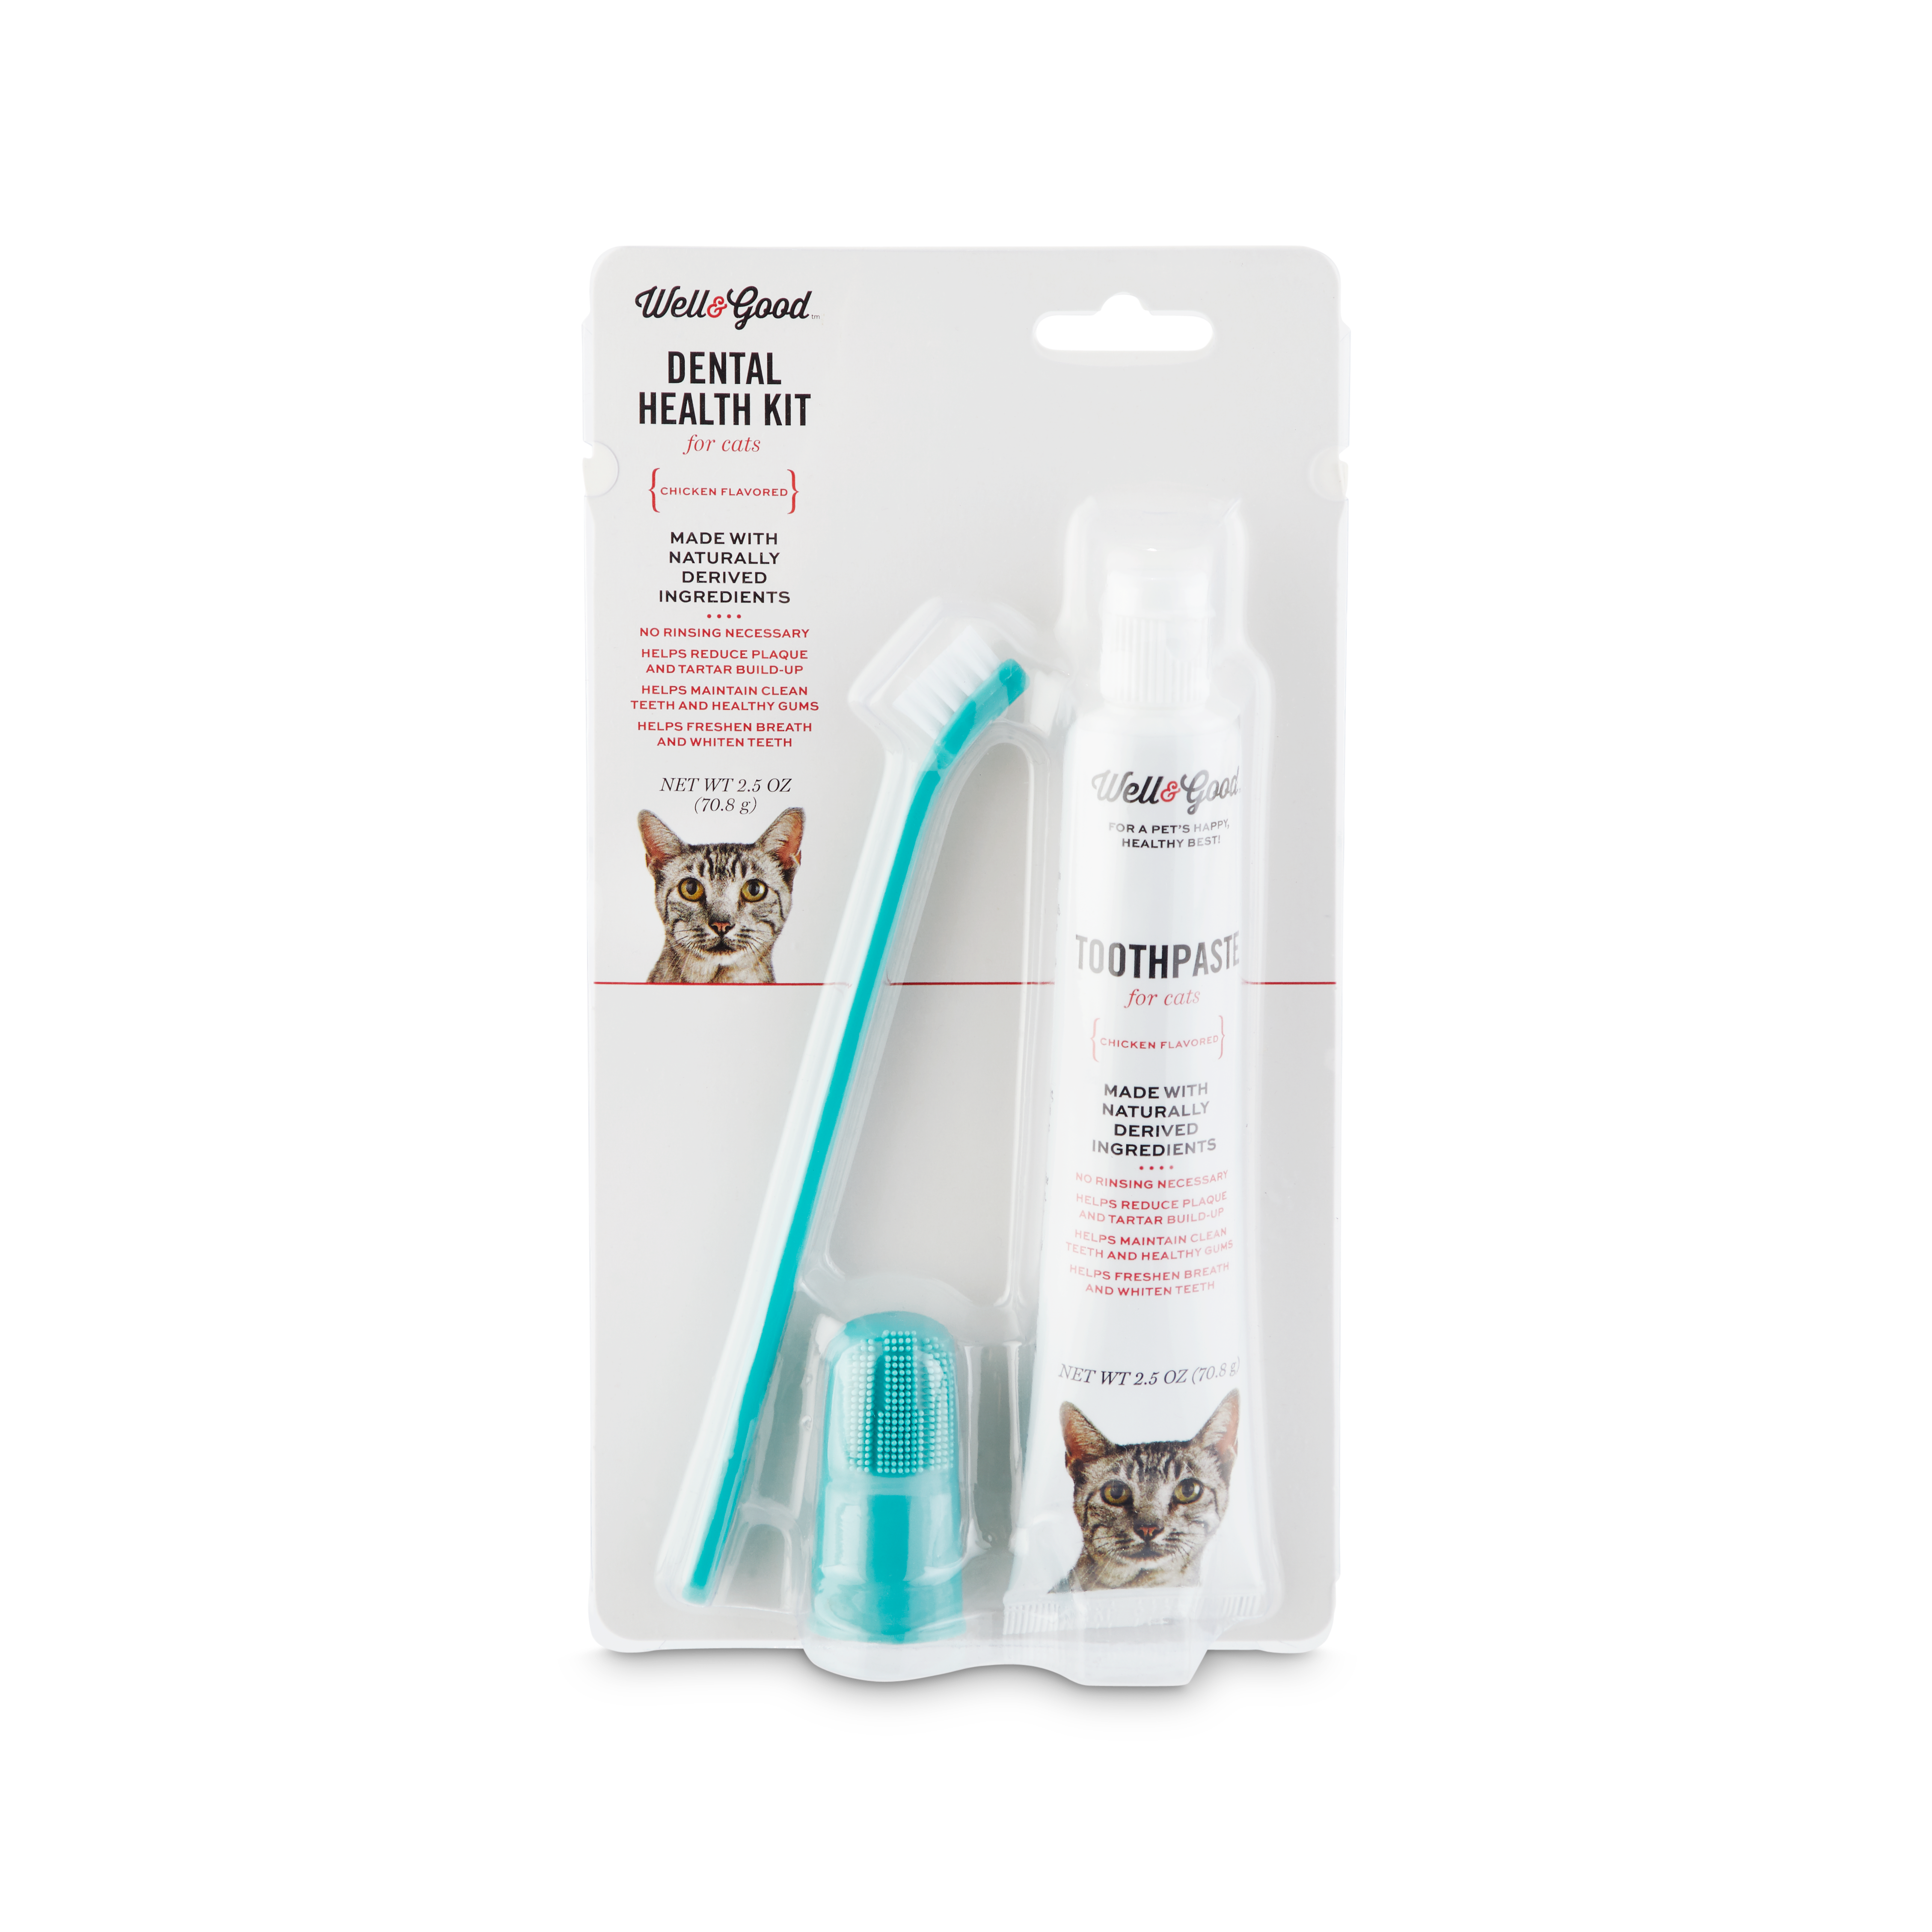 Well Good Cat Dental Health Kit With Chicken Flavored Toothpaste 2 5 Oz Petco